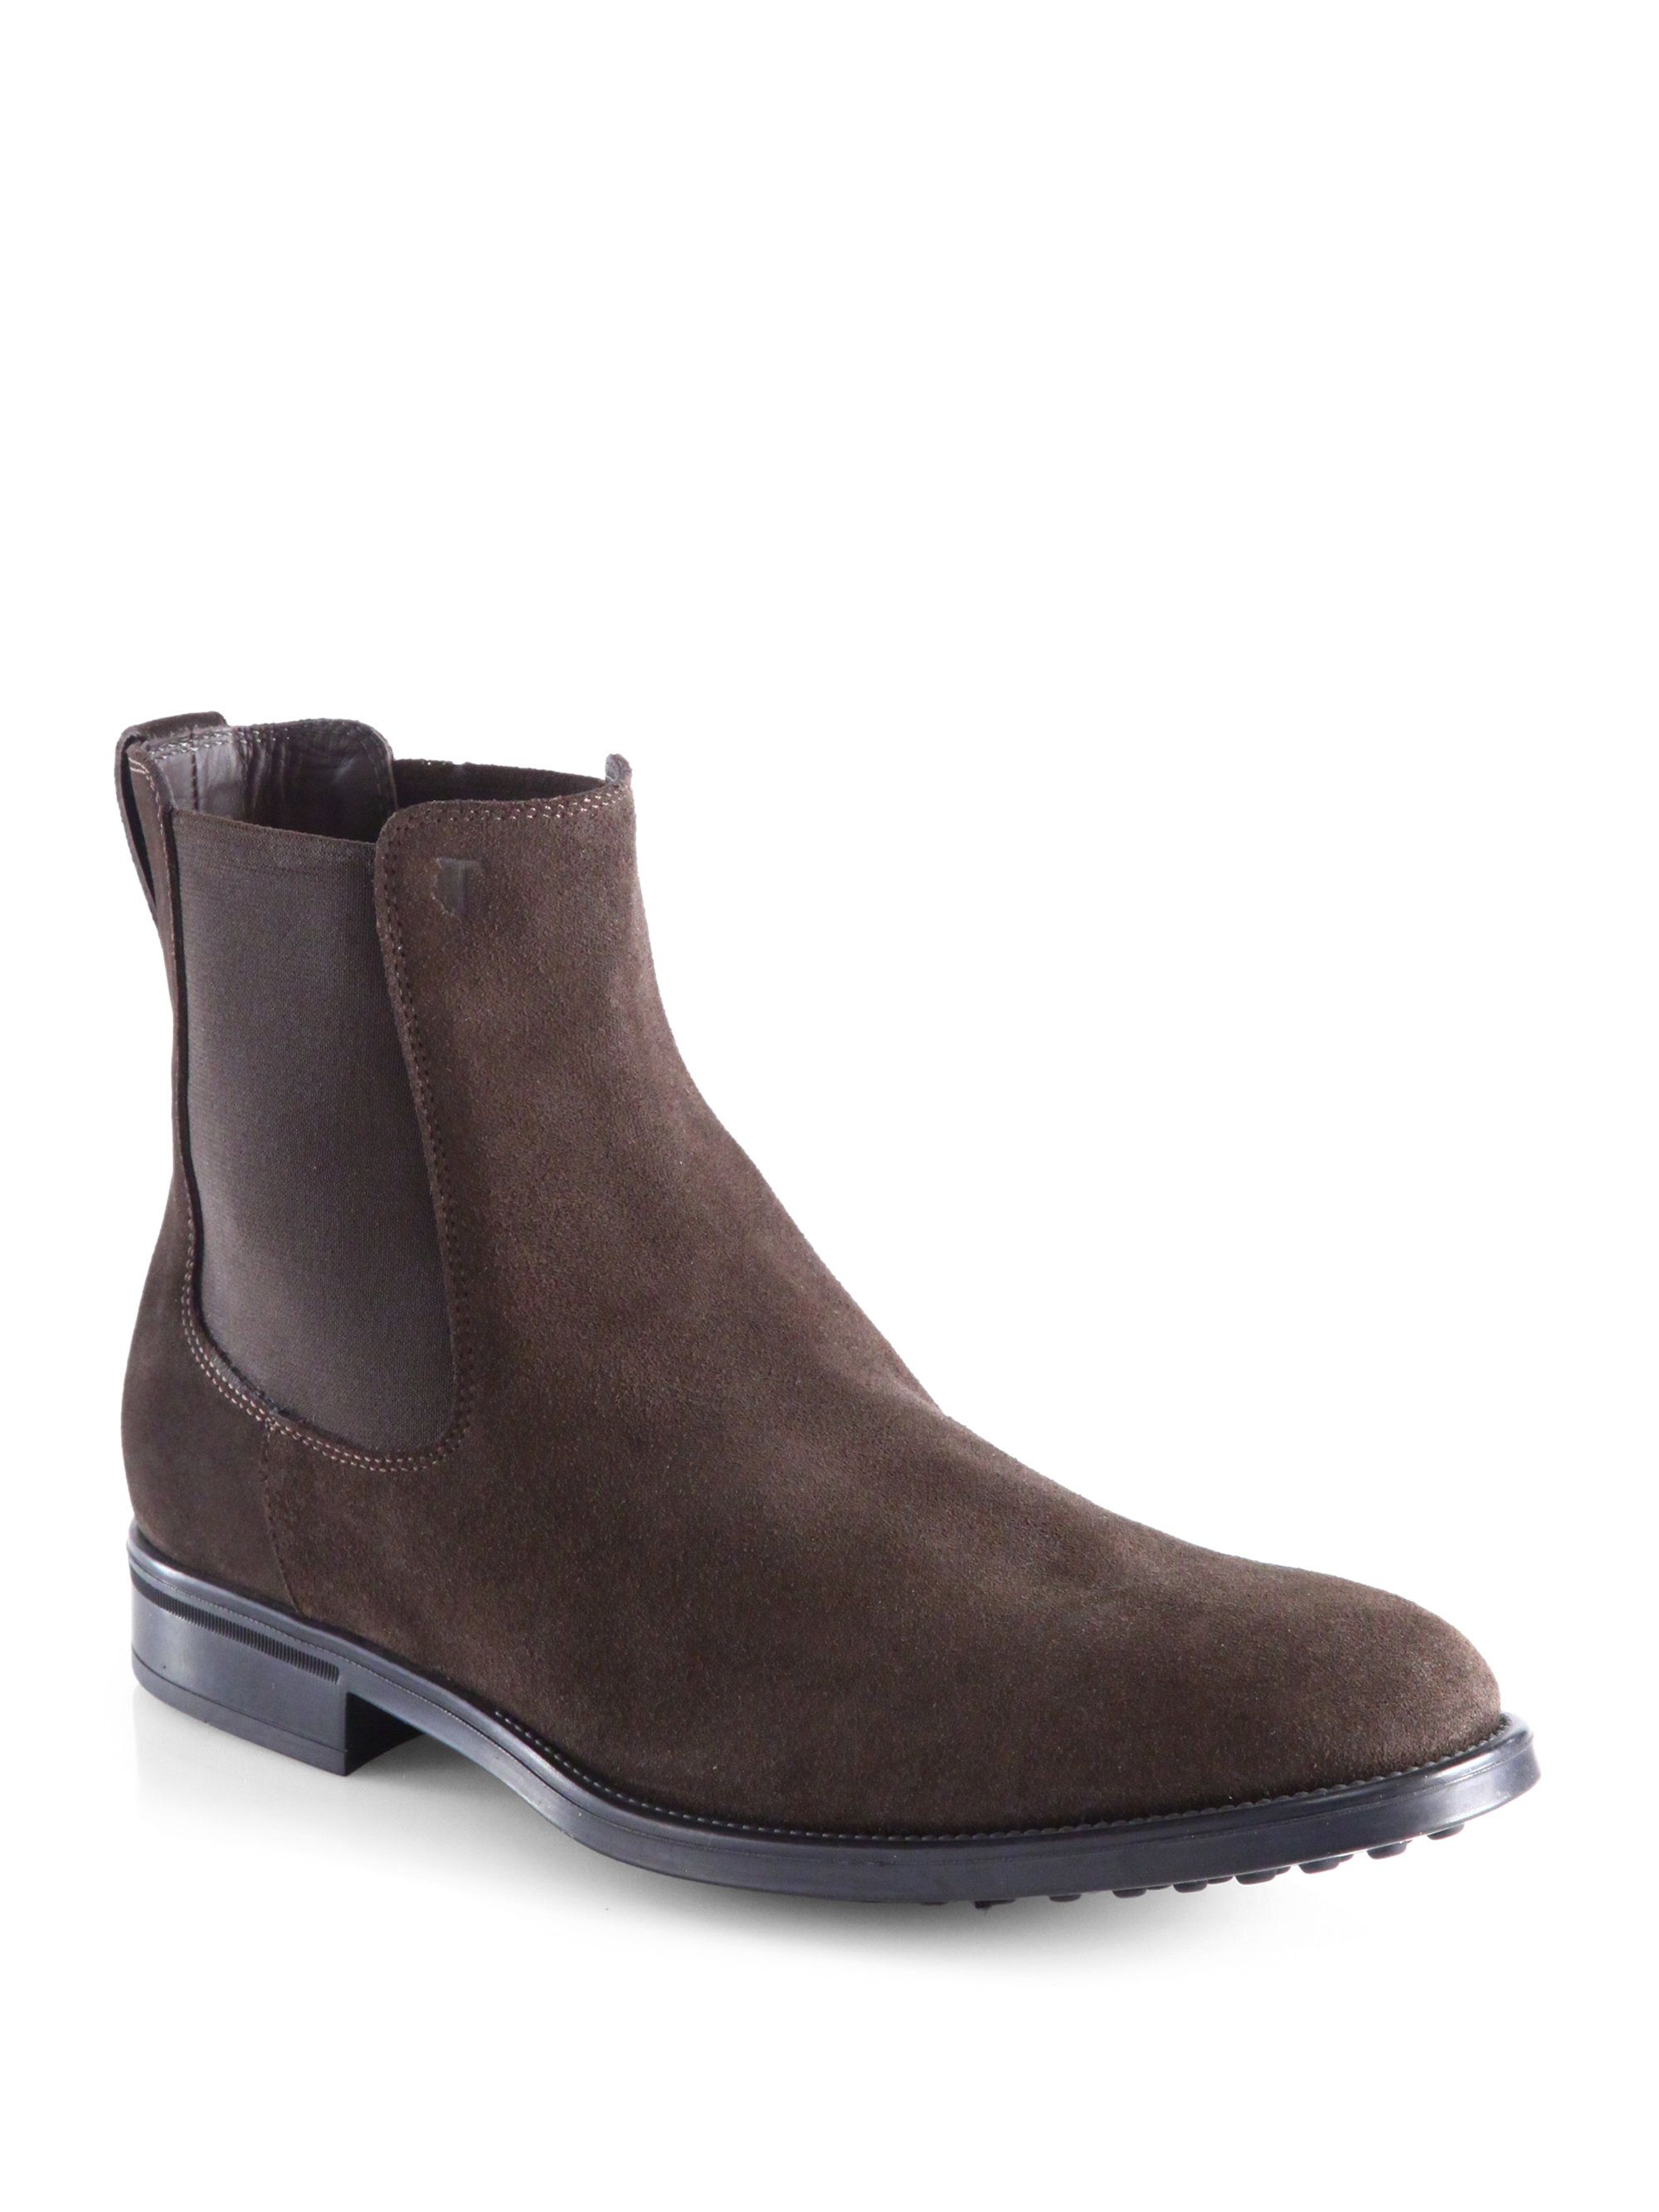 Designer S Chelsea Boots For Men